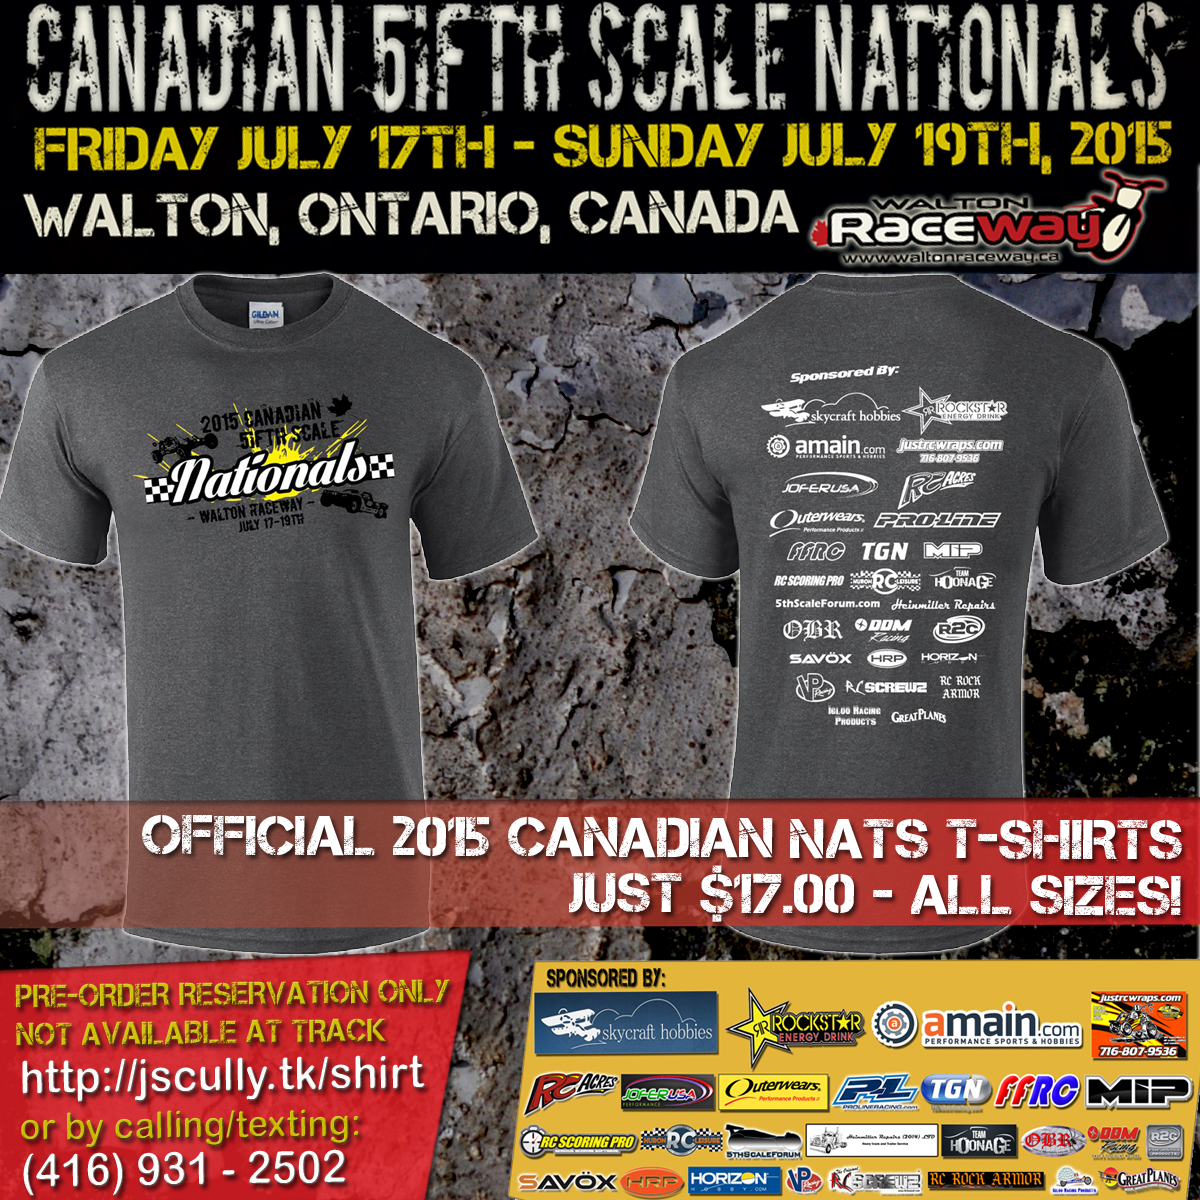 Article: The 2015 Canadian 5ifth Scale Nationals July 17-19, 2015.